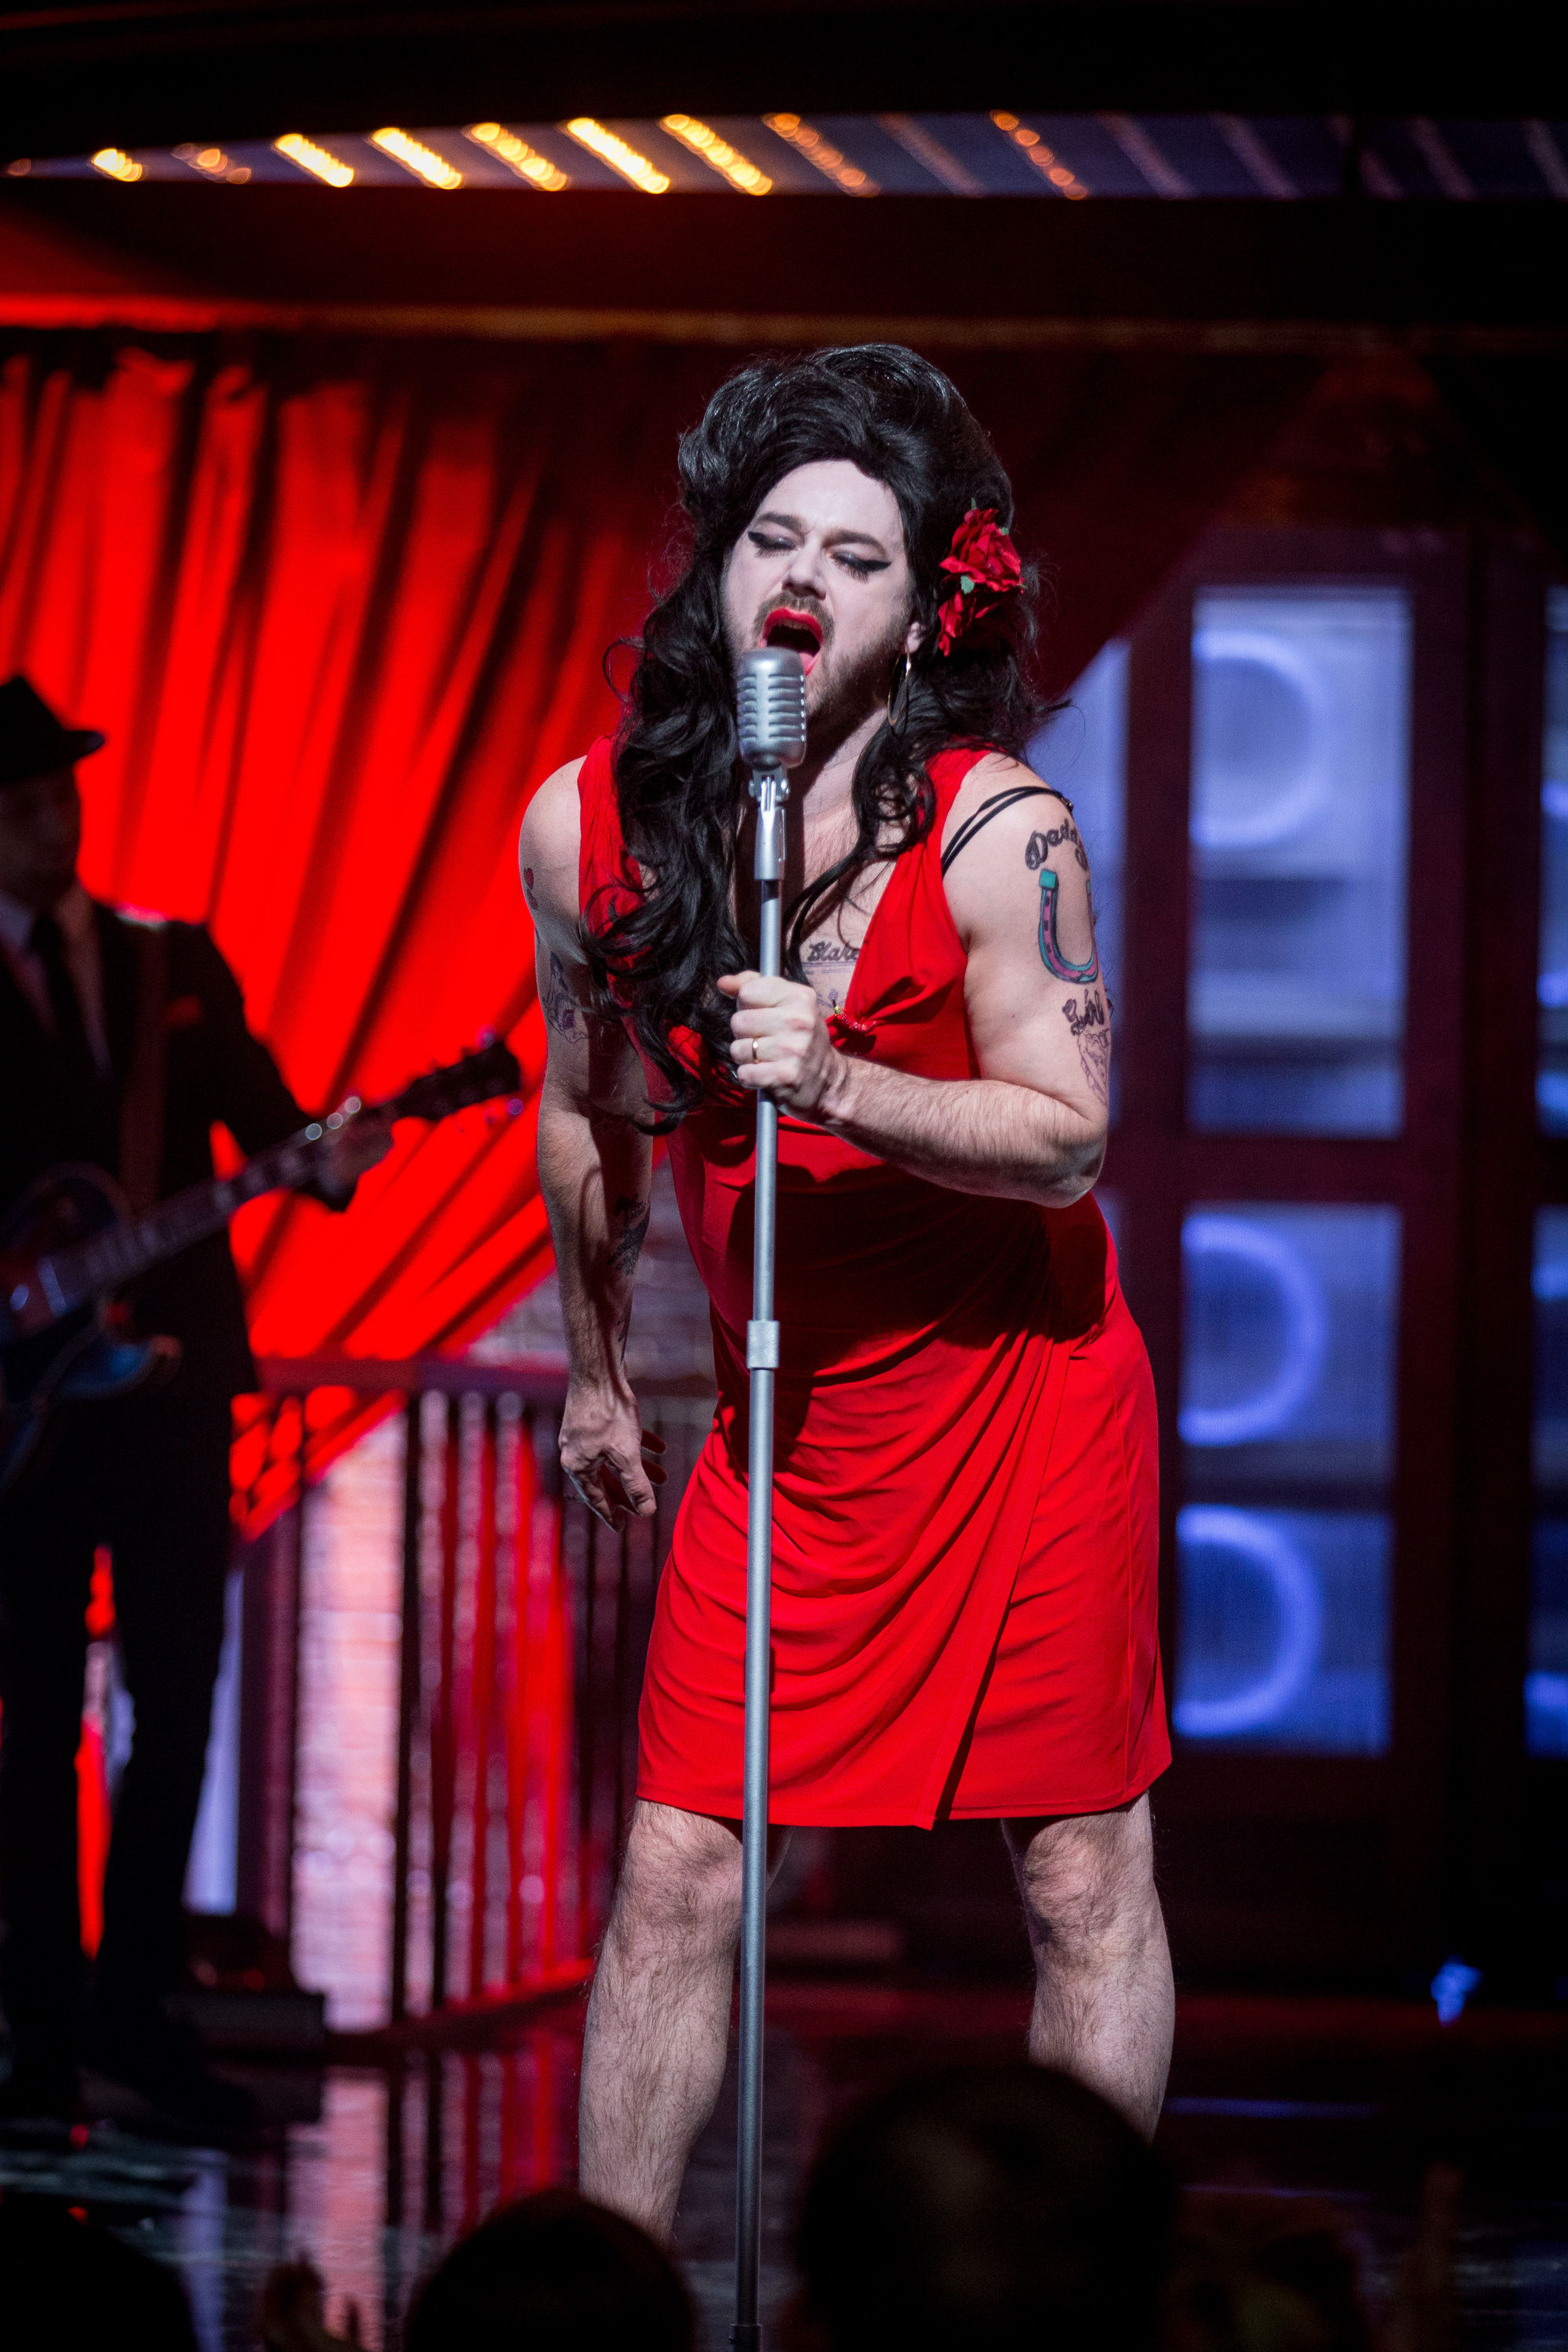 Danny Dyer Dresses Up As Amy Winehouse - Complete